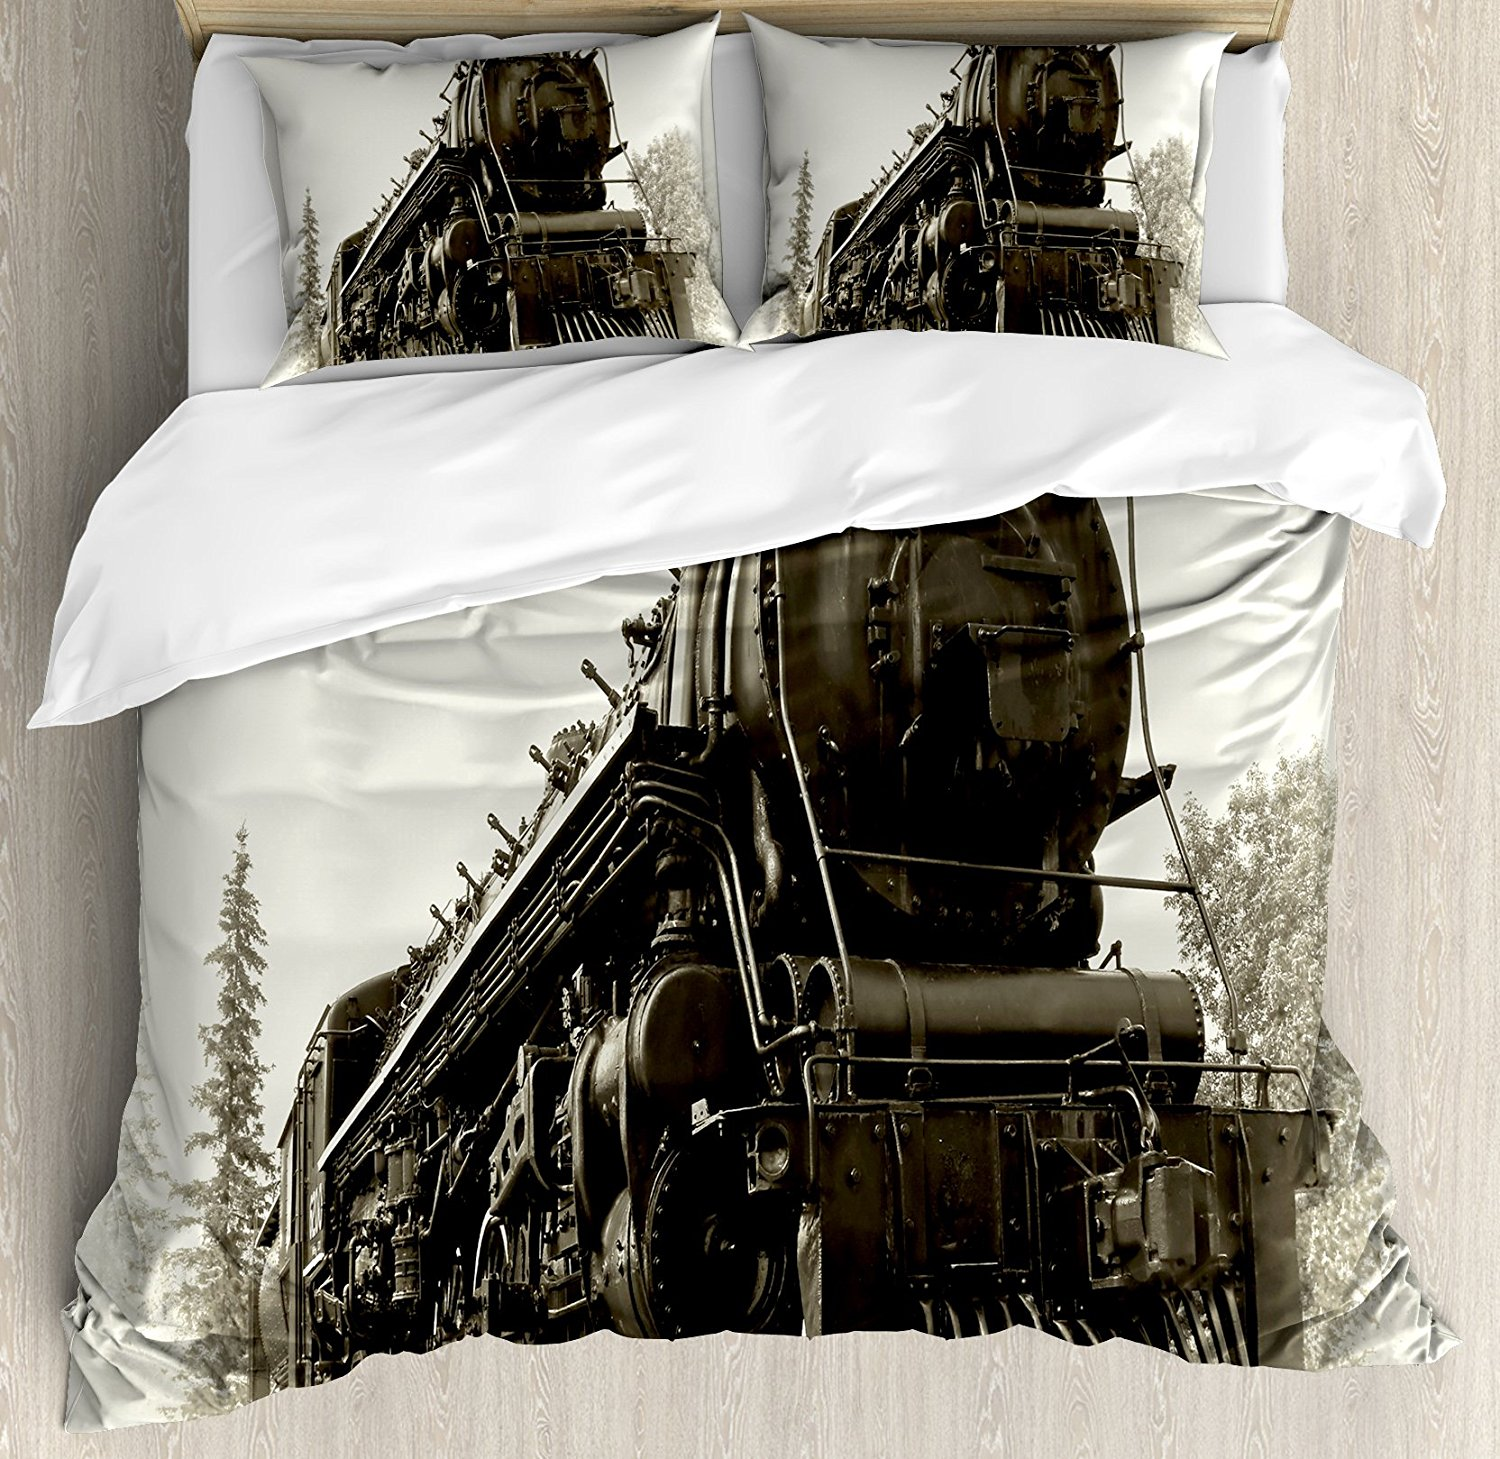 Duvet Cover Set, Antique Northern Express Train Canada Railways Photo Freight Machine Print, 4 Piece Bedding Set